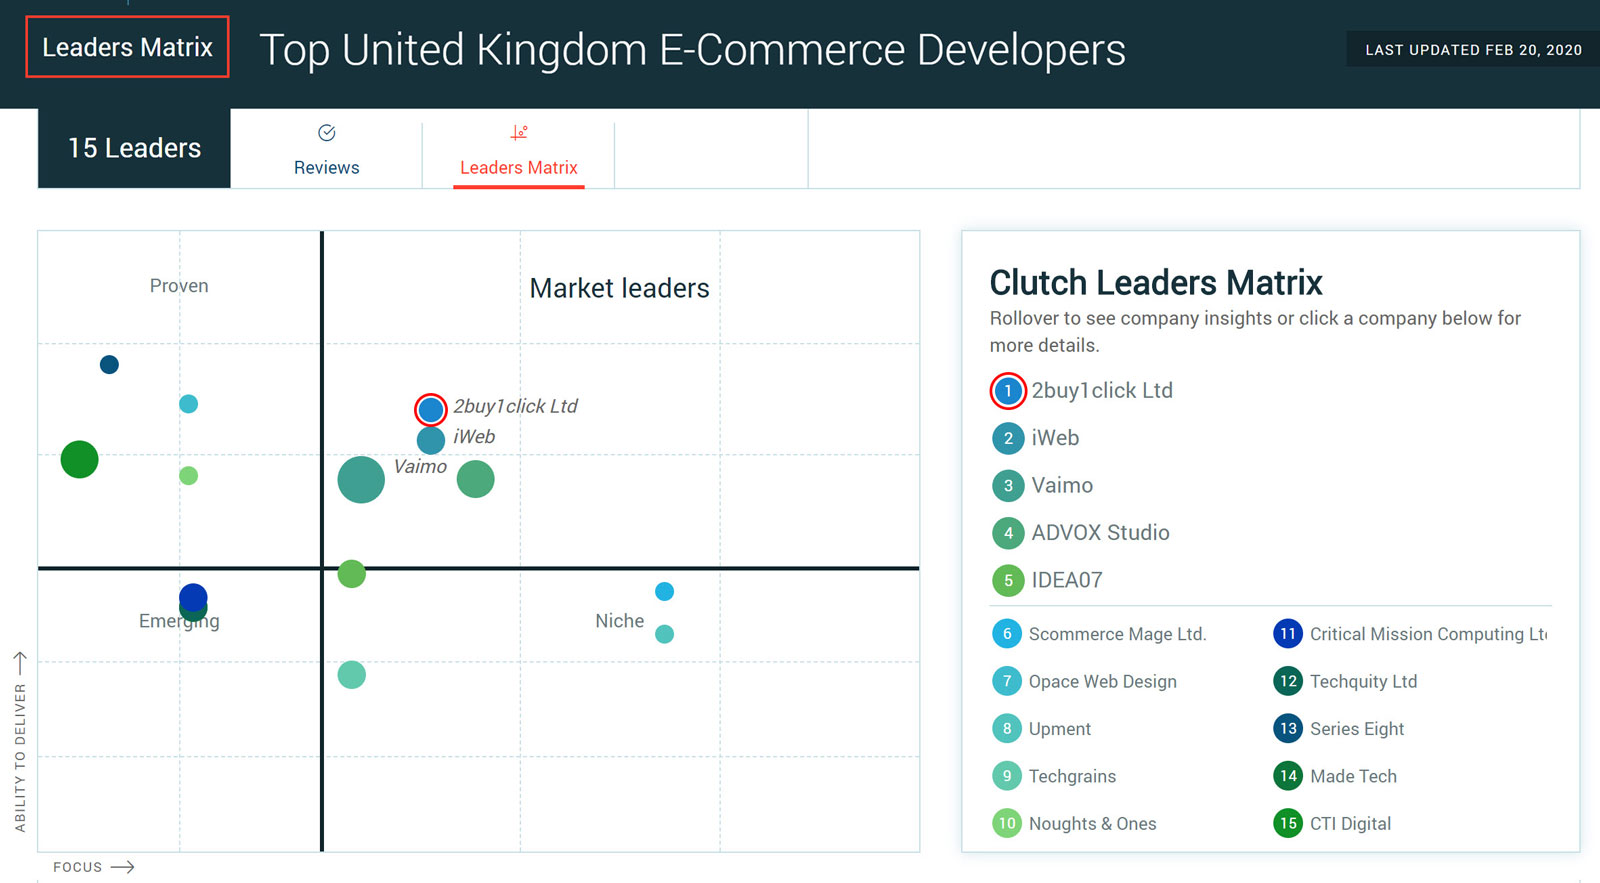 Clutch Awards - Leaders Matrix eCommerce